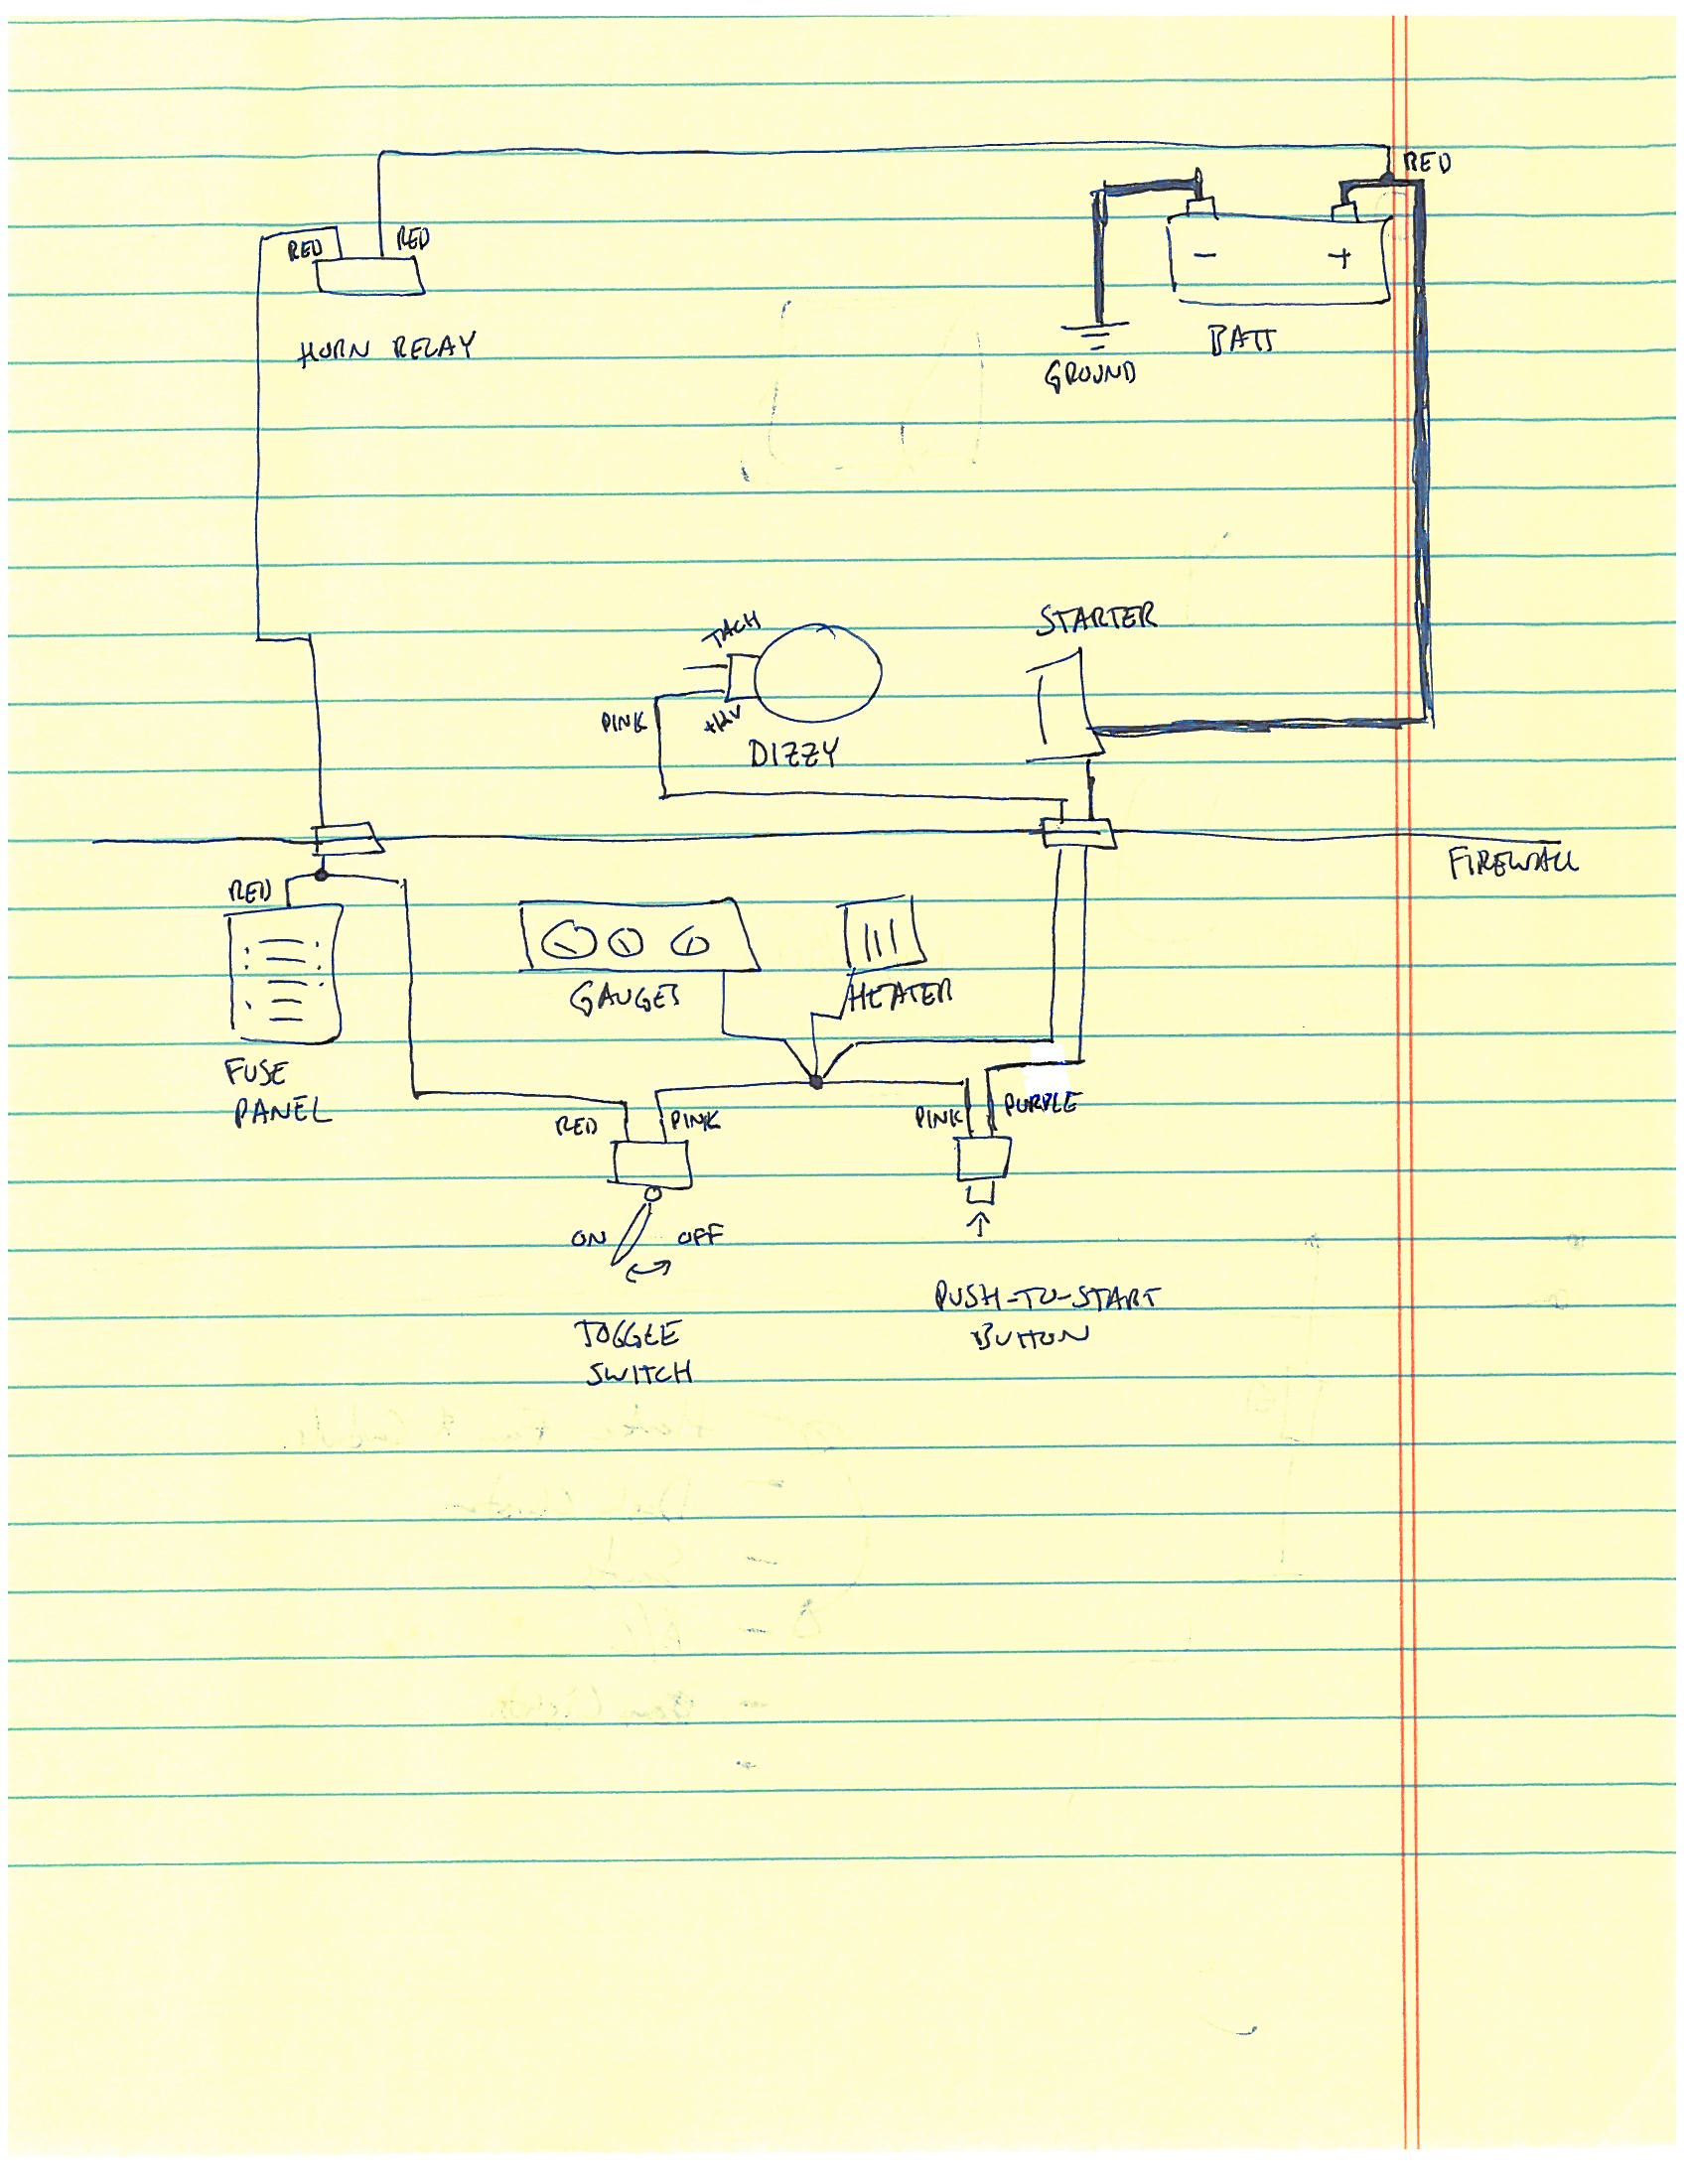 chevelle dash wiring diagram wiring diagrams and schematics all generation wiring schematics chevy nova forum